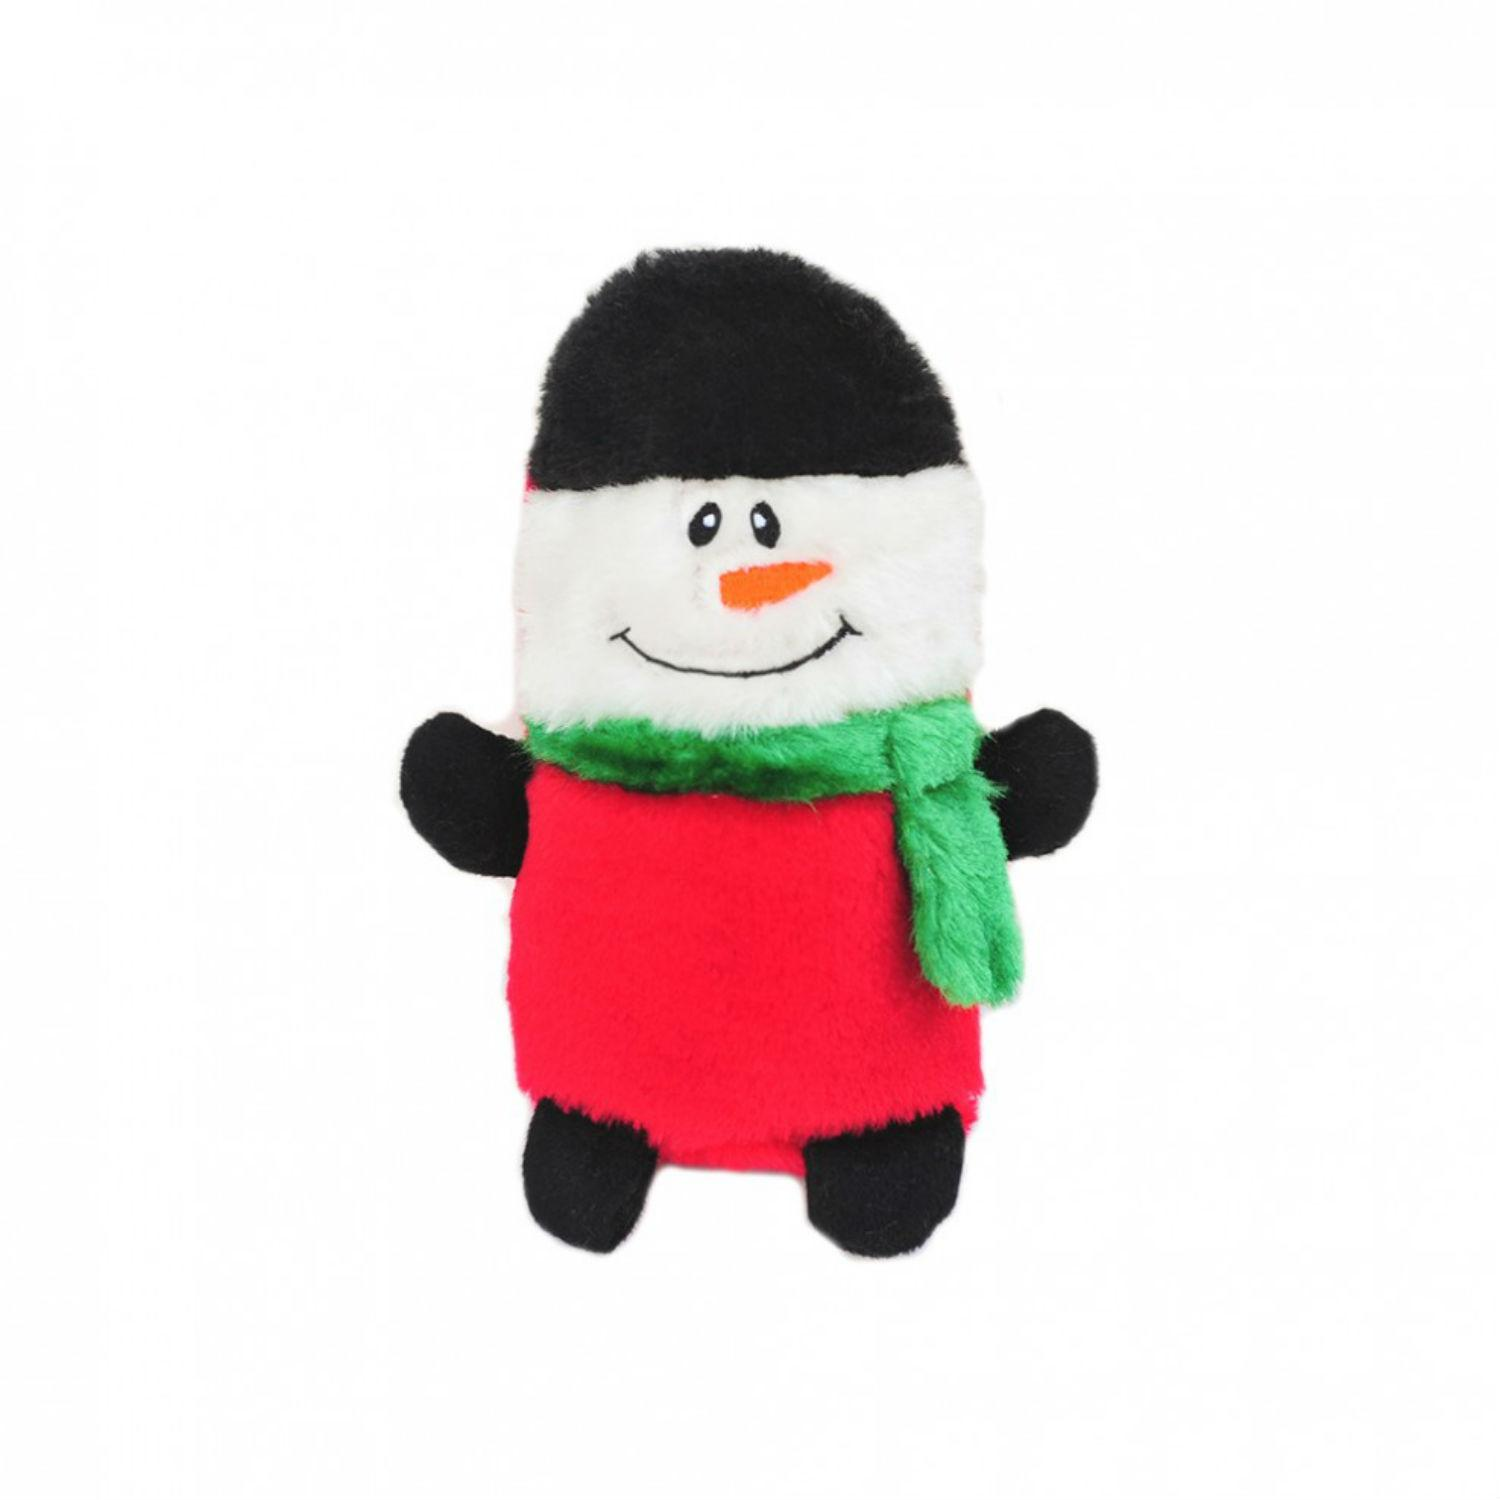 ZippyPaws Holiday Colossal Buddie Dog Toy - Snowman